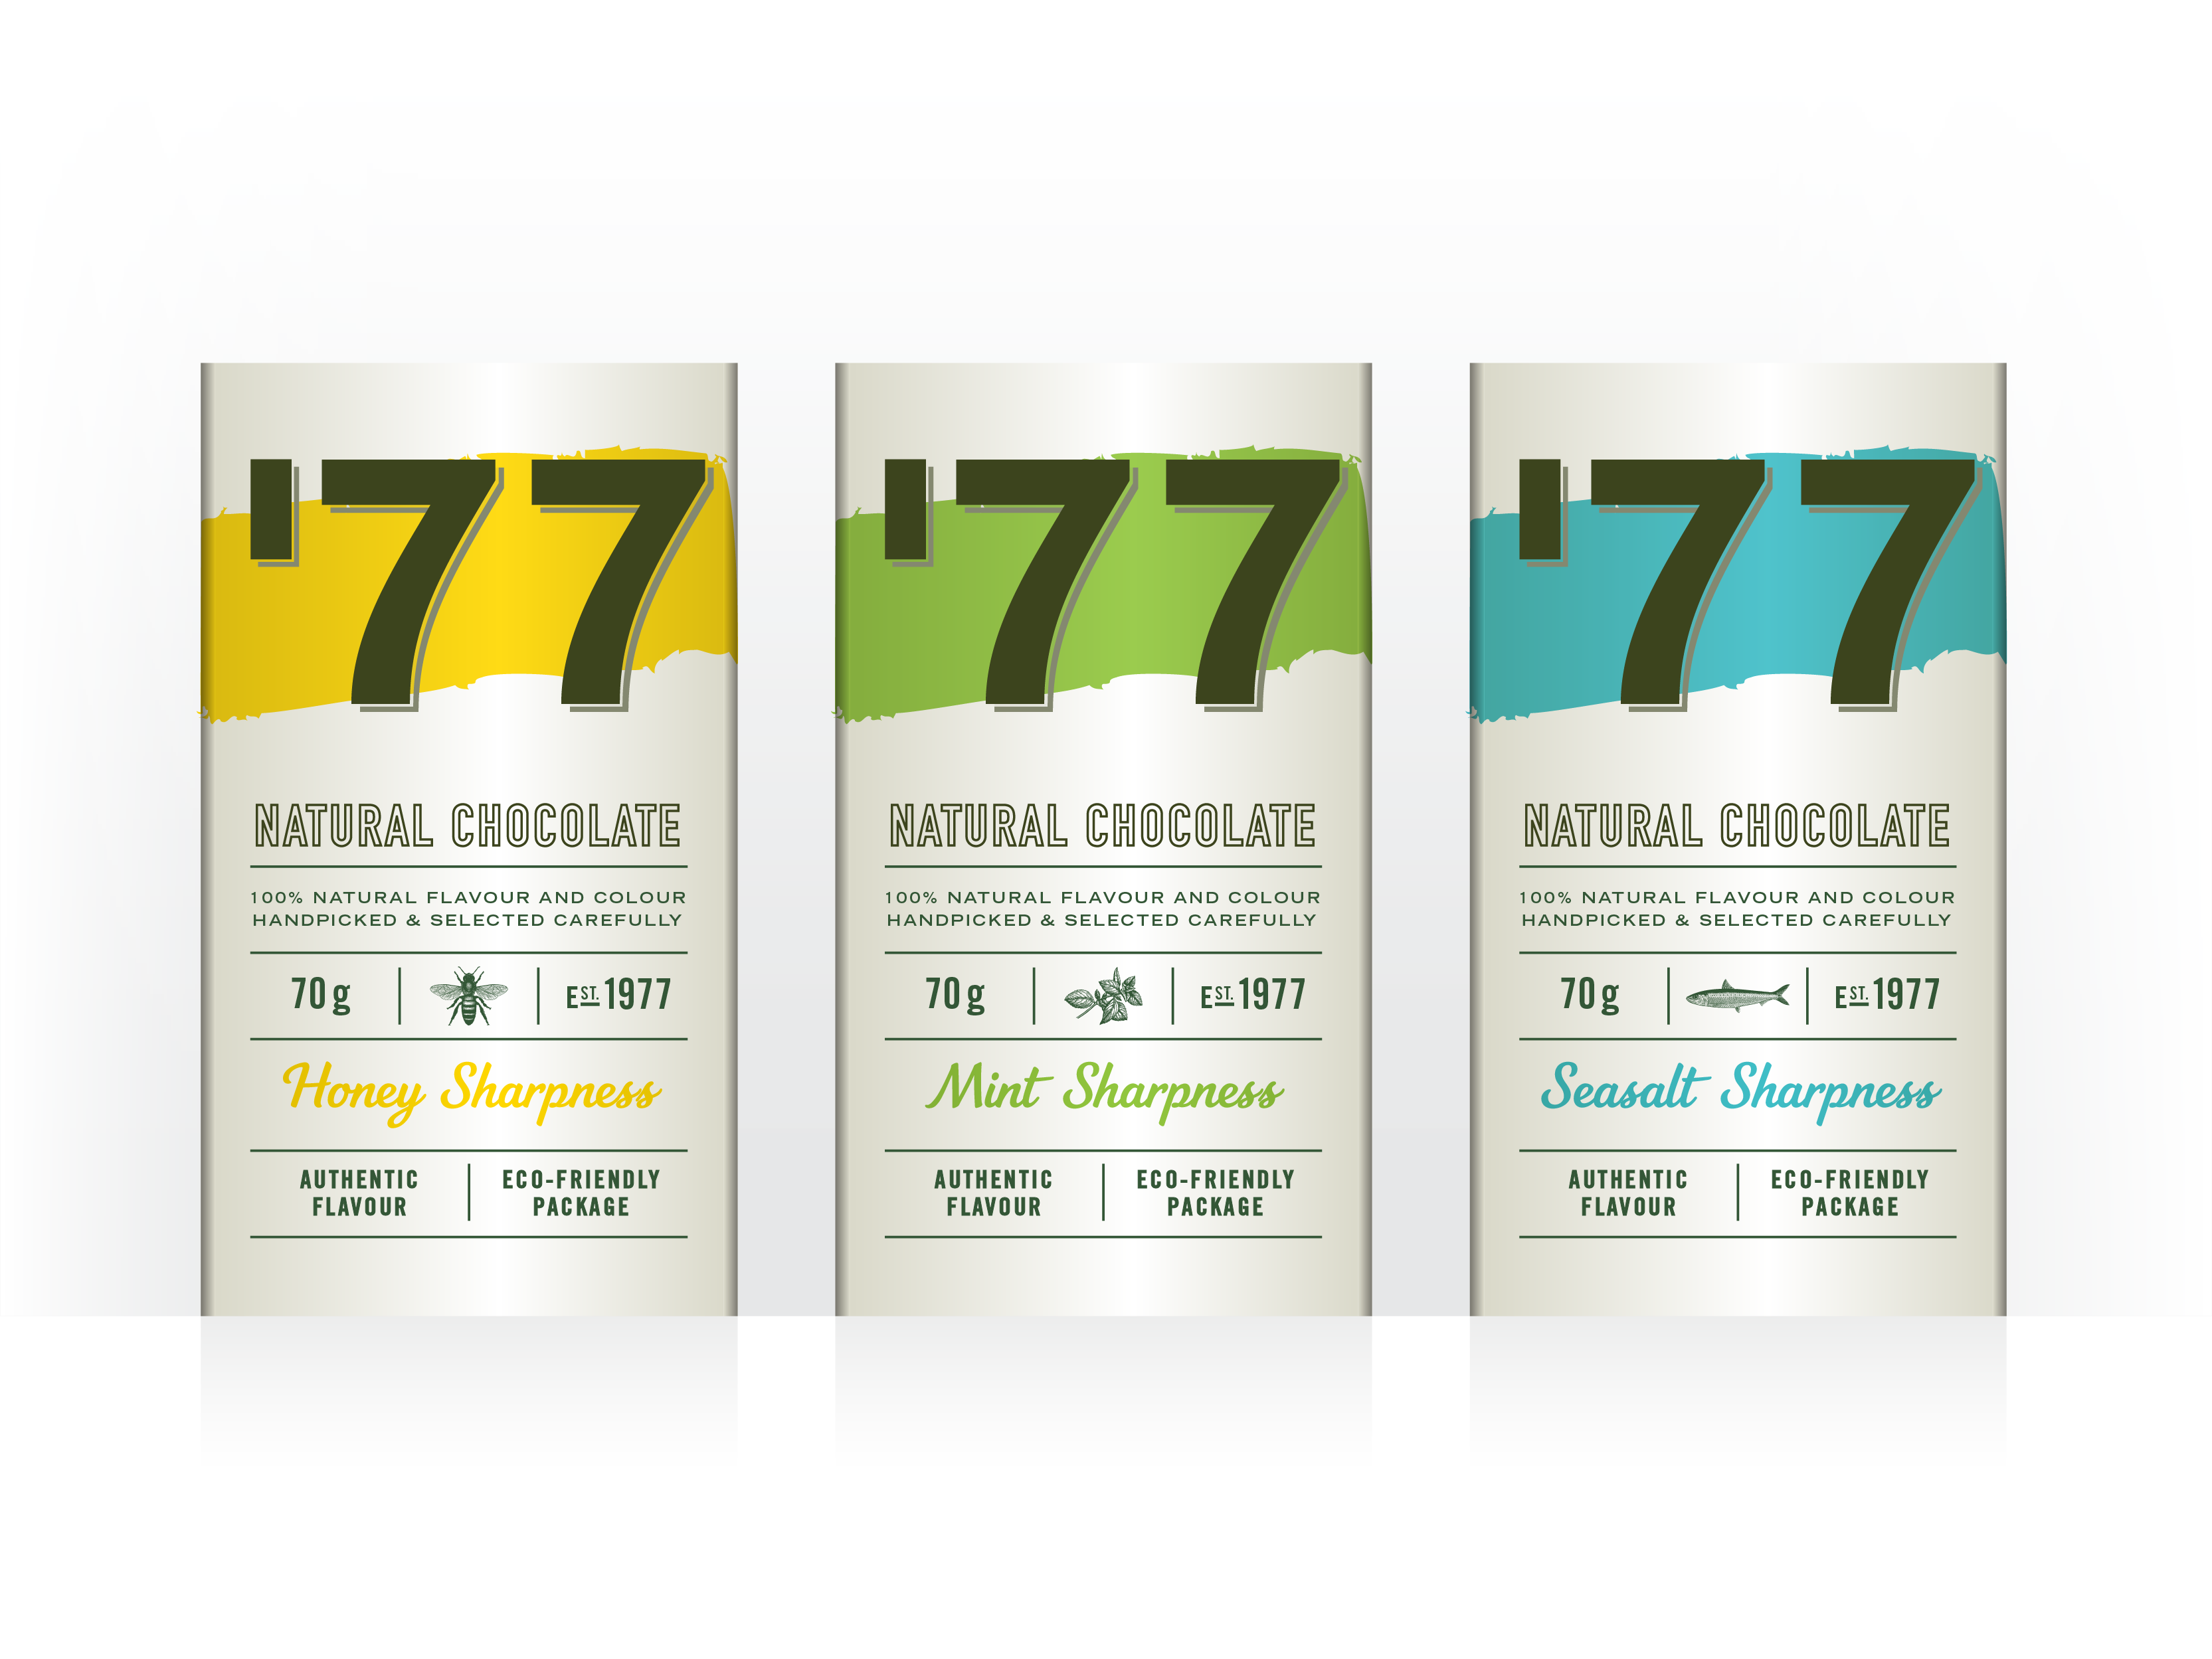 Chocolate packaging v2 01